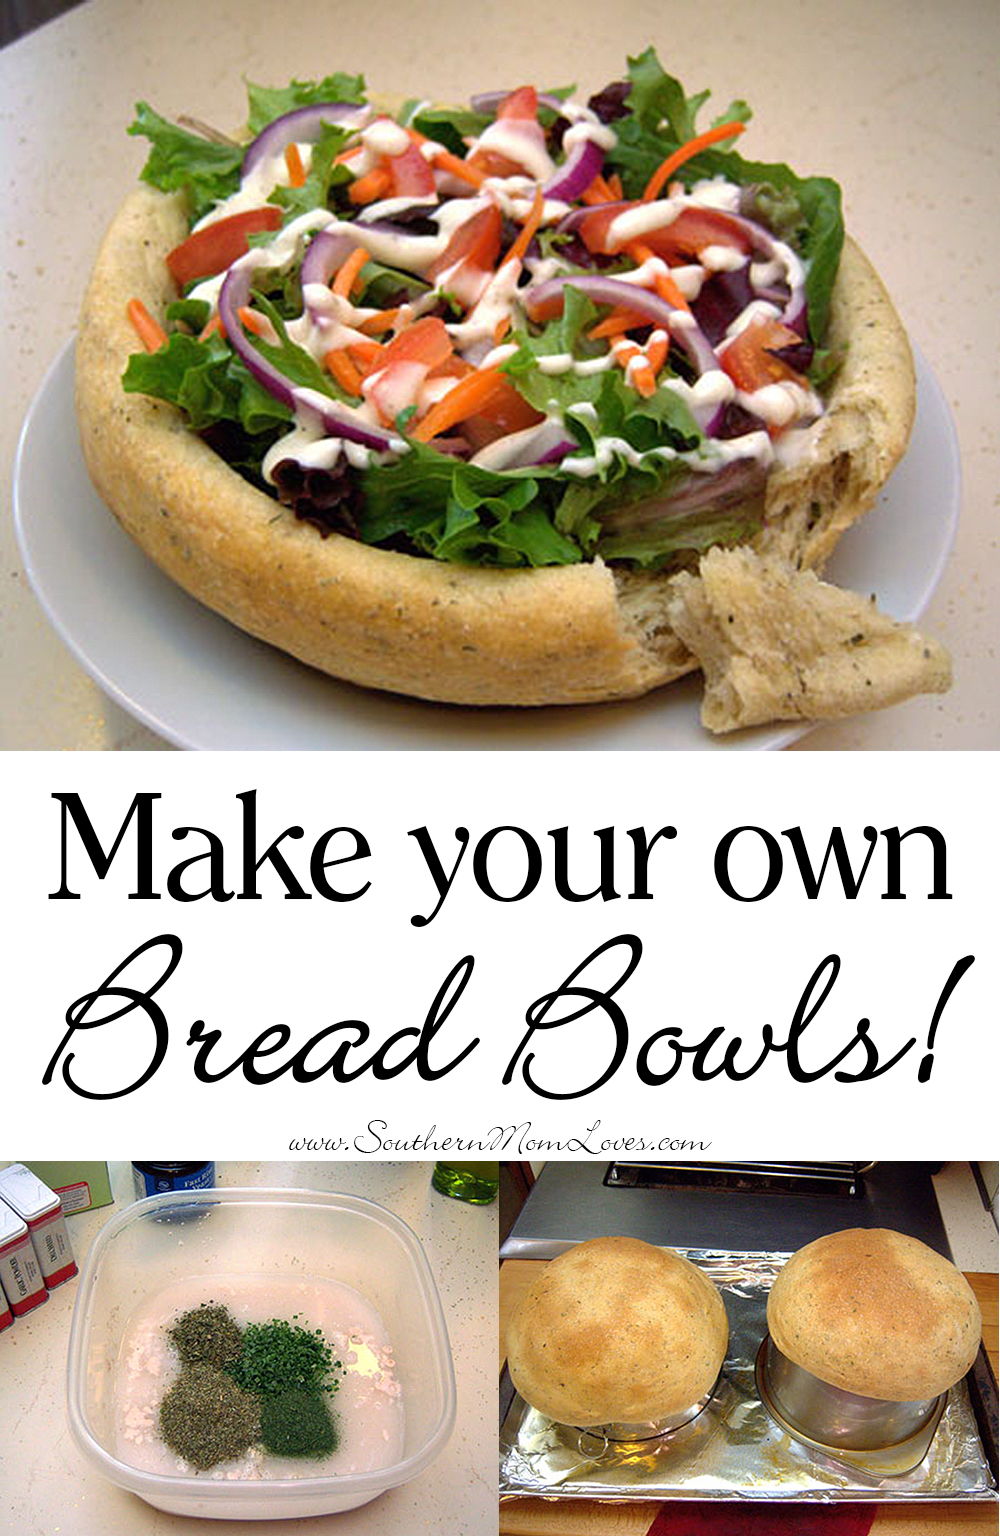 You can even make your own homemade bread bowls (Broccoli Soup Recipes) Loaded Broccoli and Cheese Soup Inspired by: Broccoli Cheddar Soup from Panera Bread and 20 other copycat recipes to try Cheesy Broccoli Soup in a Bread Bowl Recipe -This creamy, rich, cheesy broccoli soup tastes just like Panera Bread! My family requests it all the time.